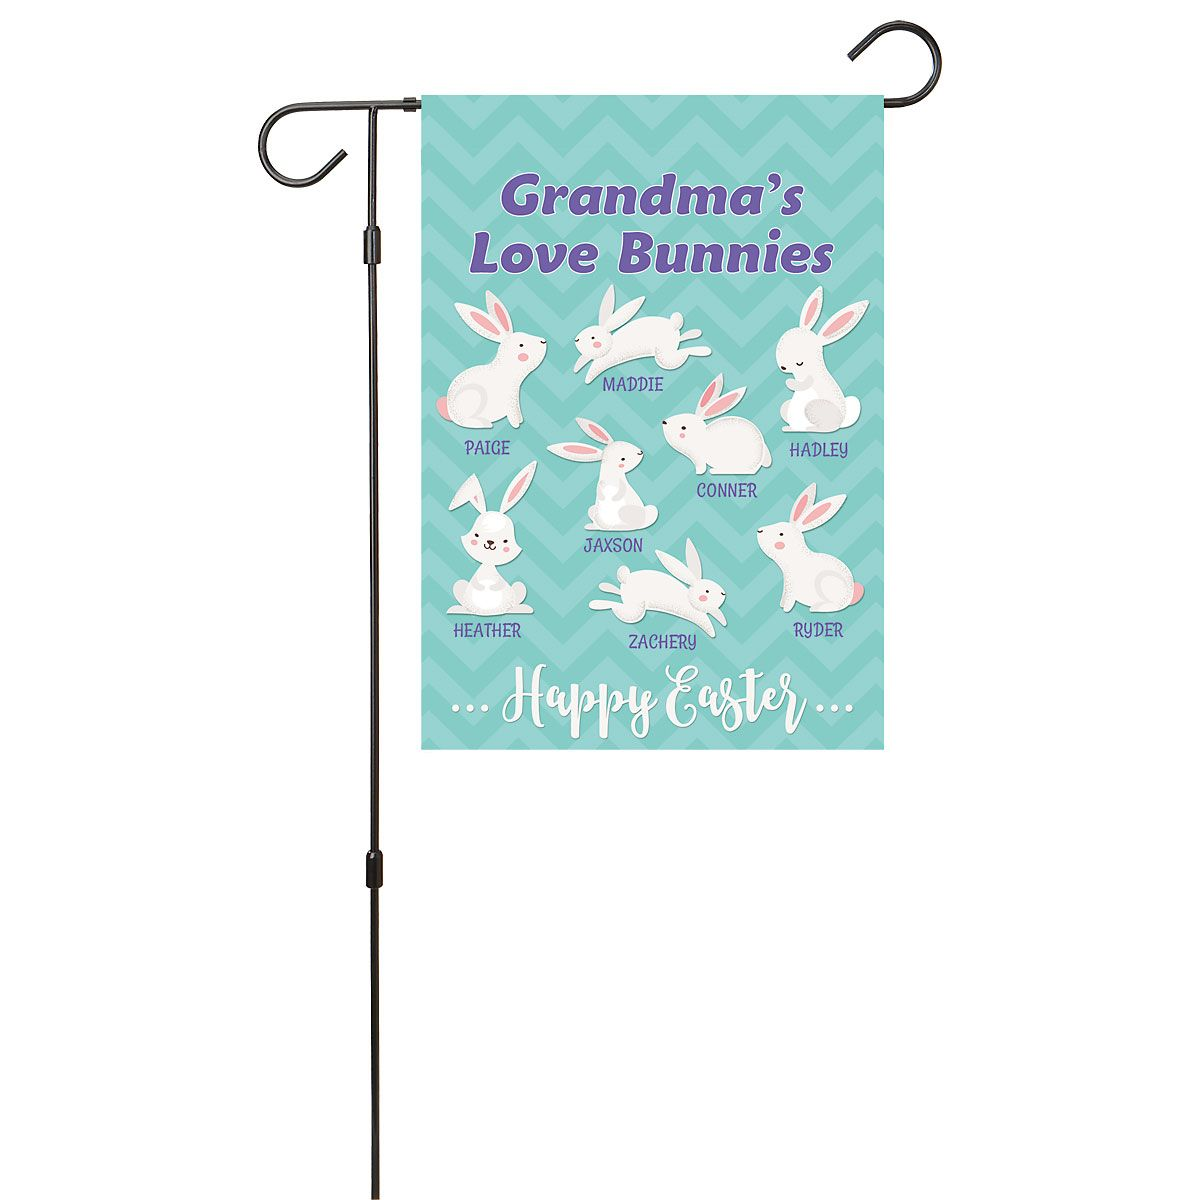 Personalized Love Bunnies Garden Flag - 8 Names